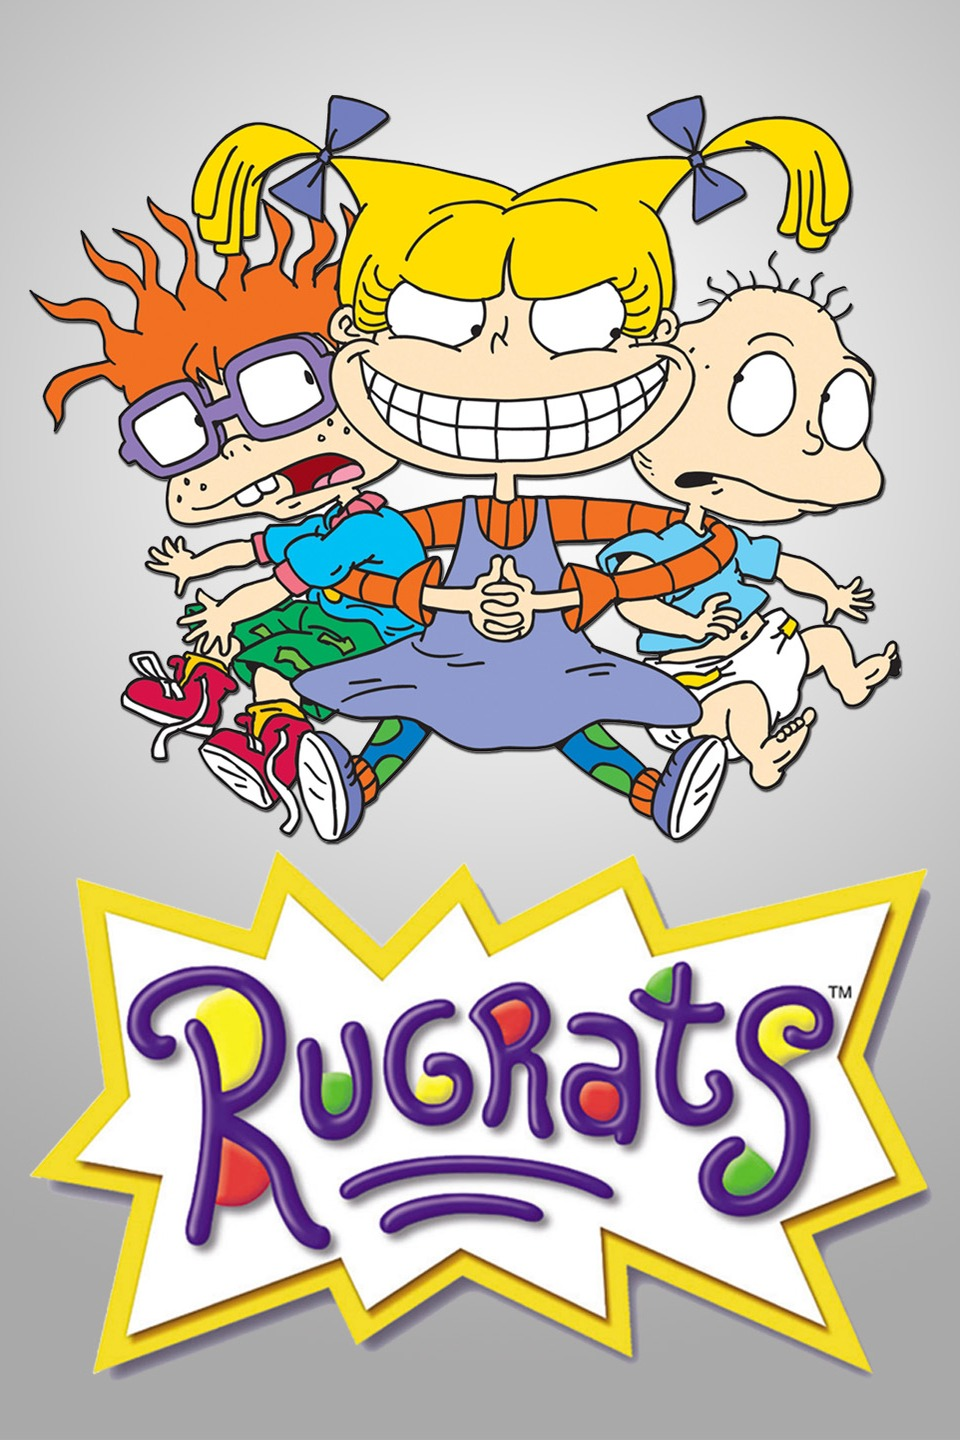 the popularity of the rugrats on tv shows and their sweet sour history Now you don't need a tv to watch your favorite nick shows we've got episodes, music videos, and original shorts from spongebob, tmnt.